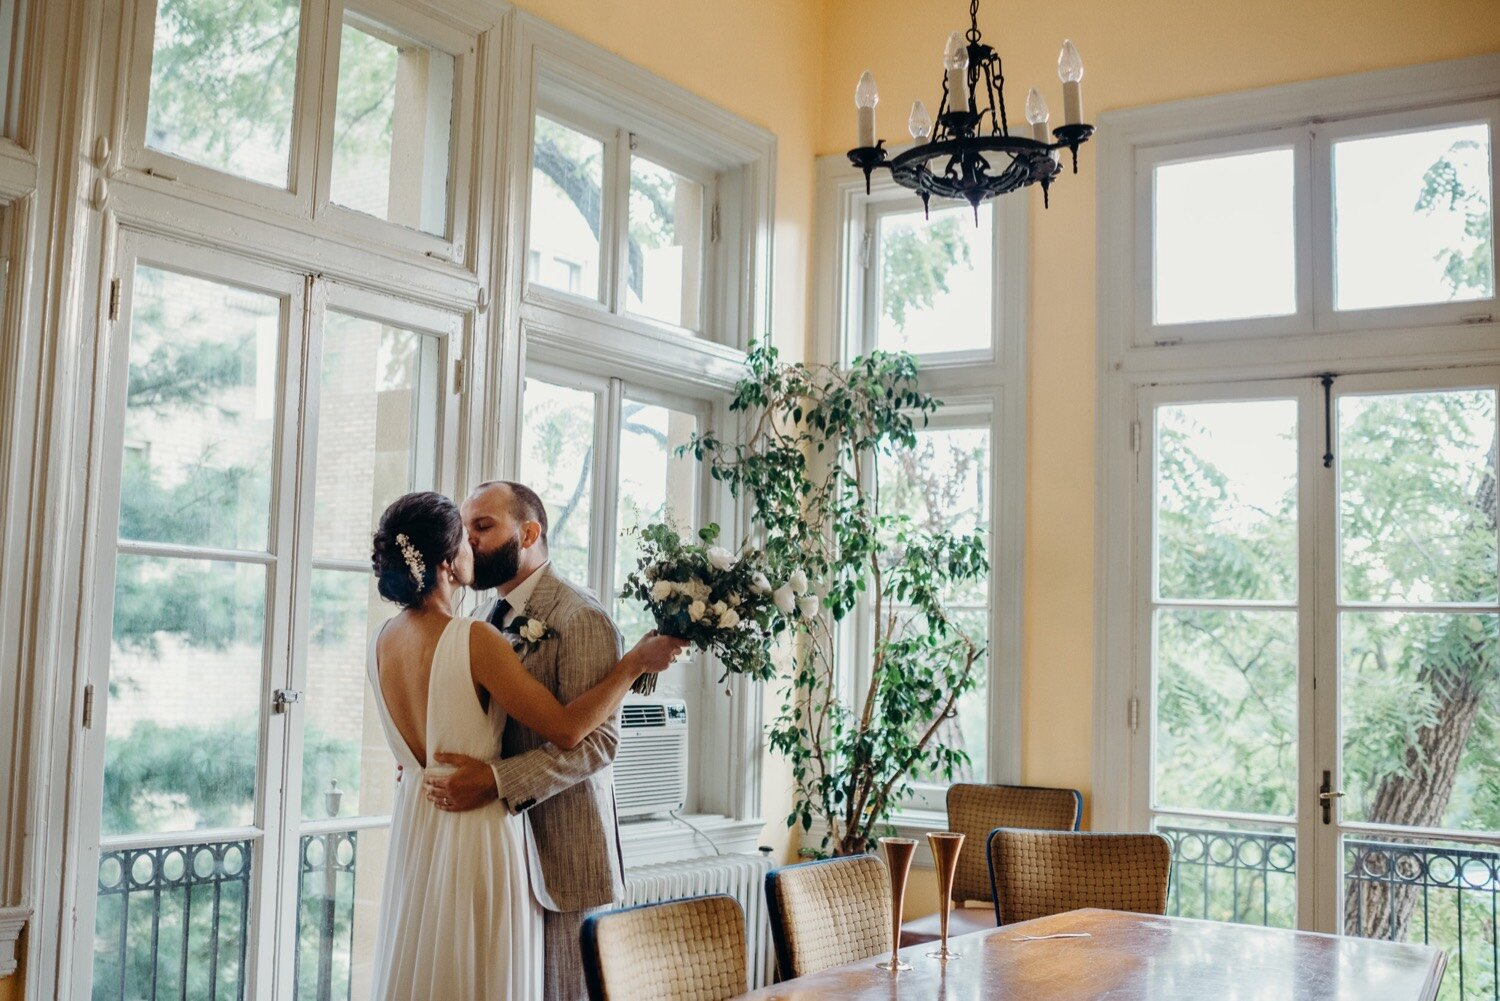 44_josephine_butler_center_photographer_dc_parks_washington_wedding.jpg